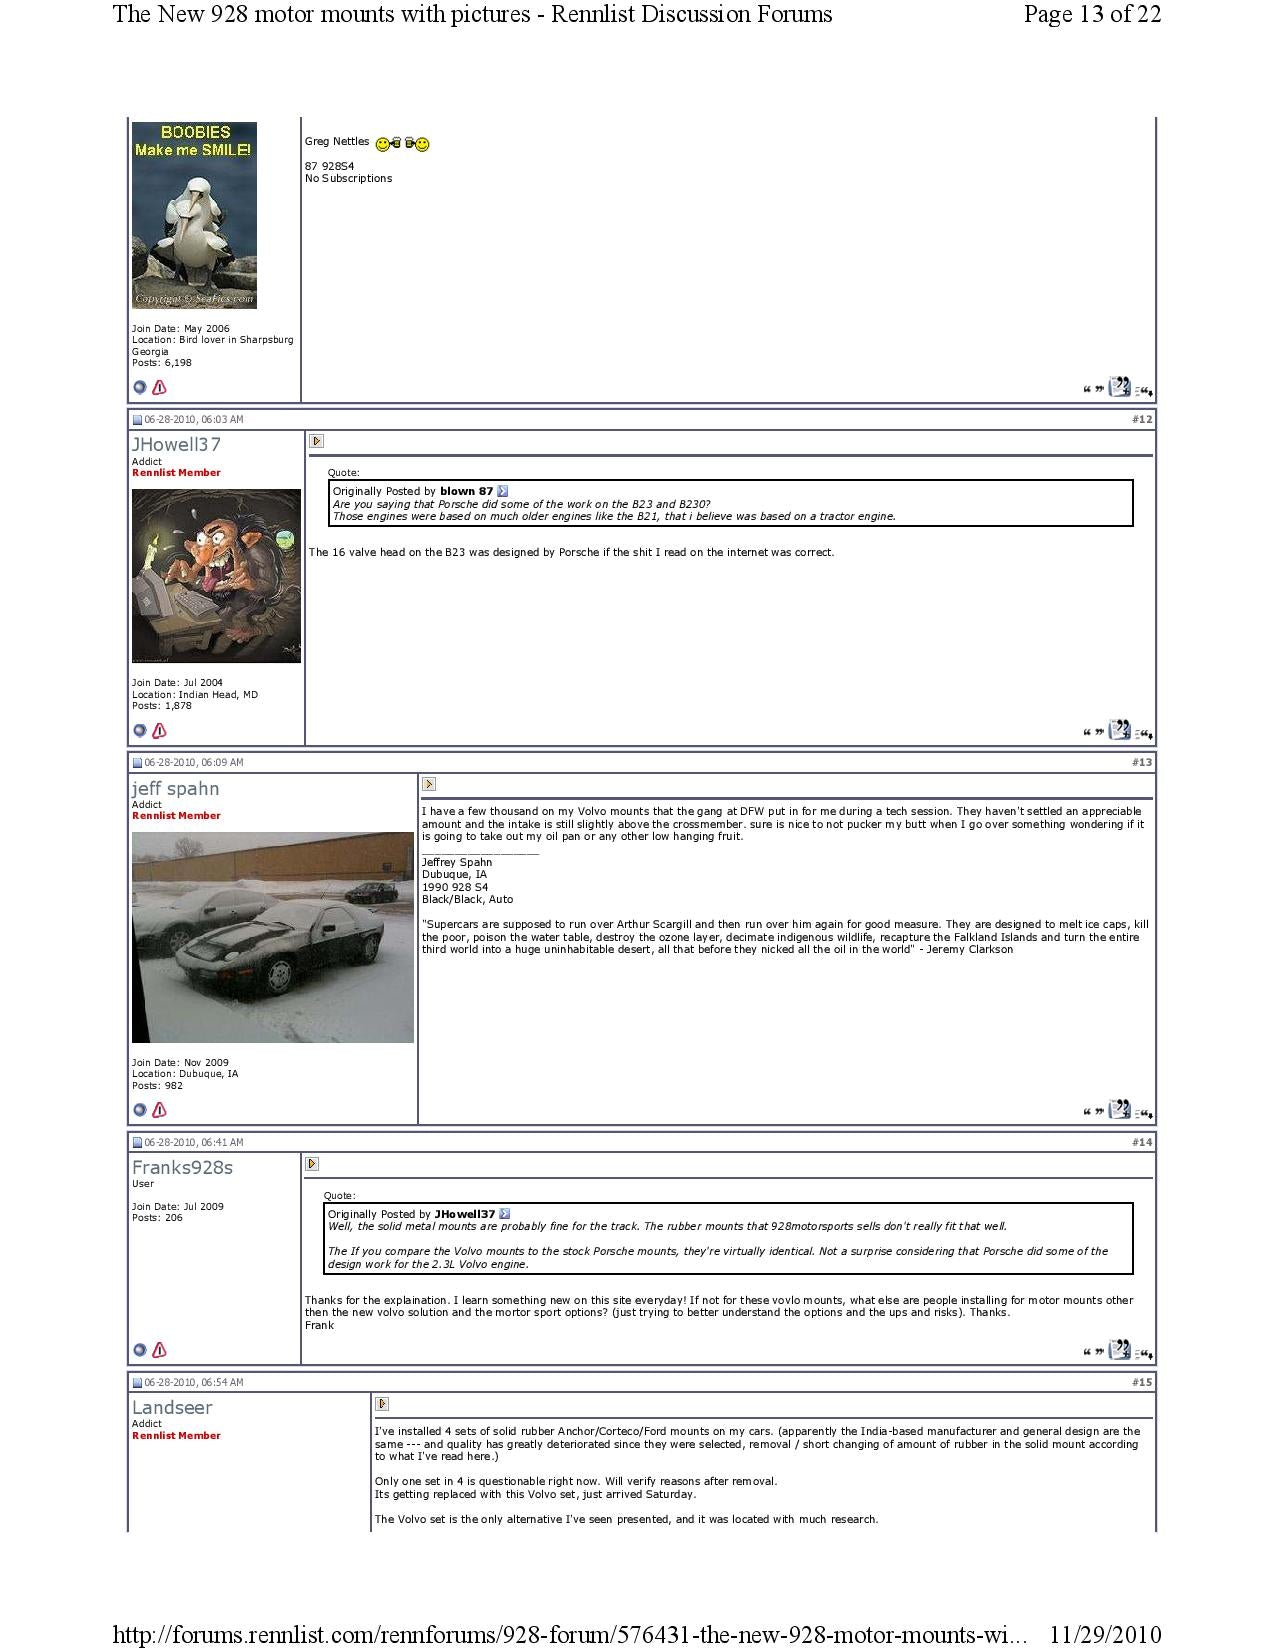 New 928 motor mounts with pictures pg13